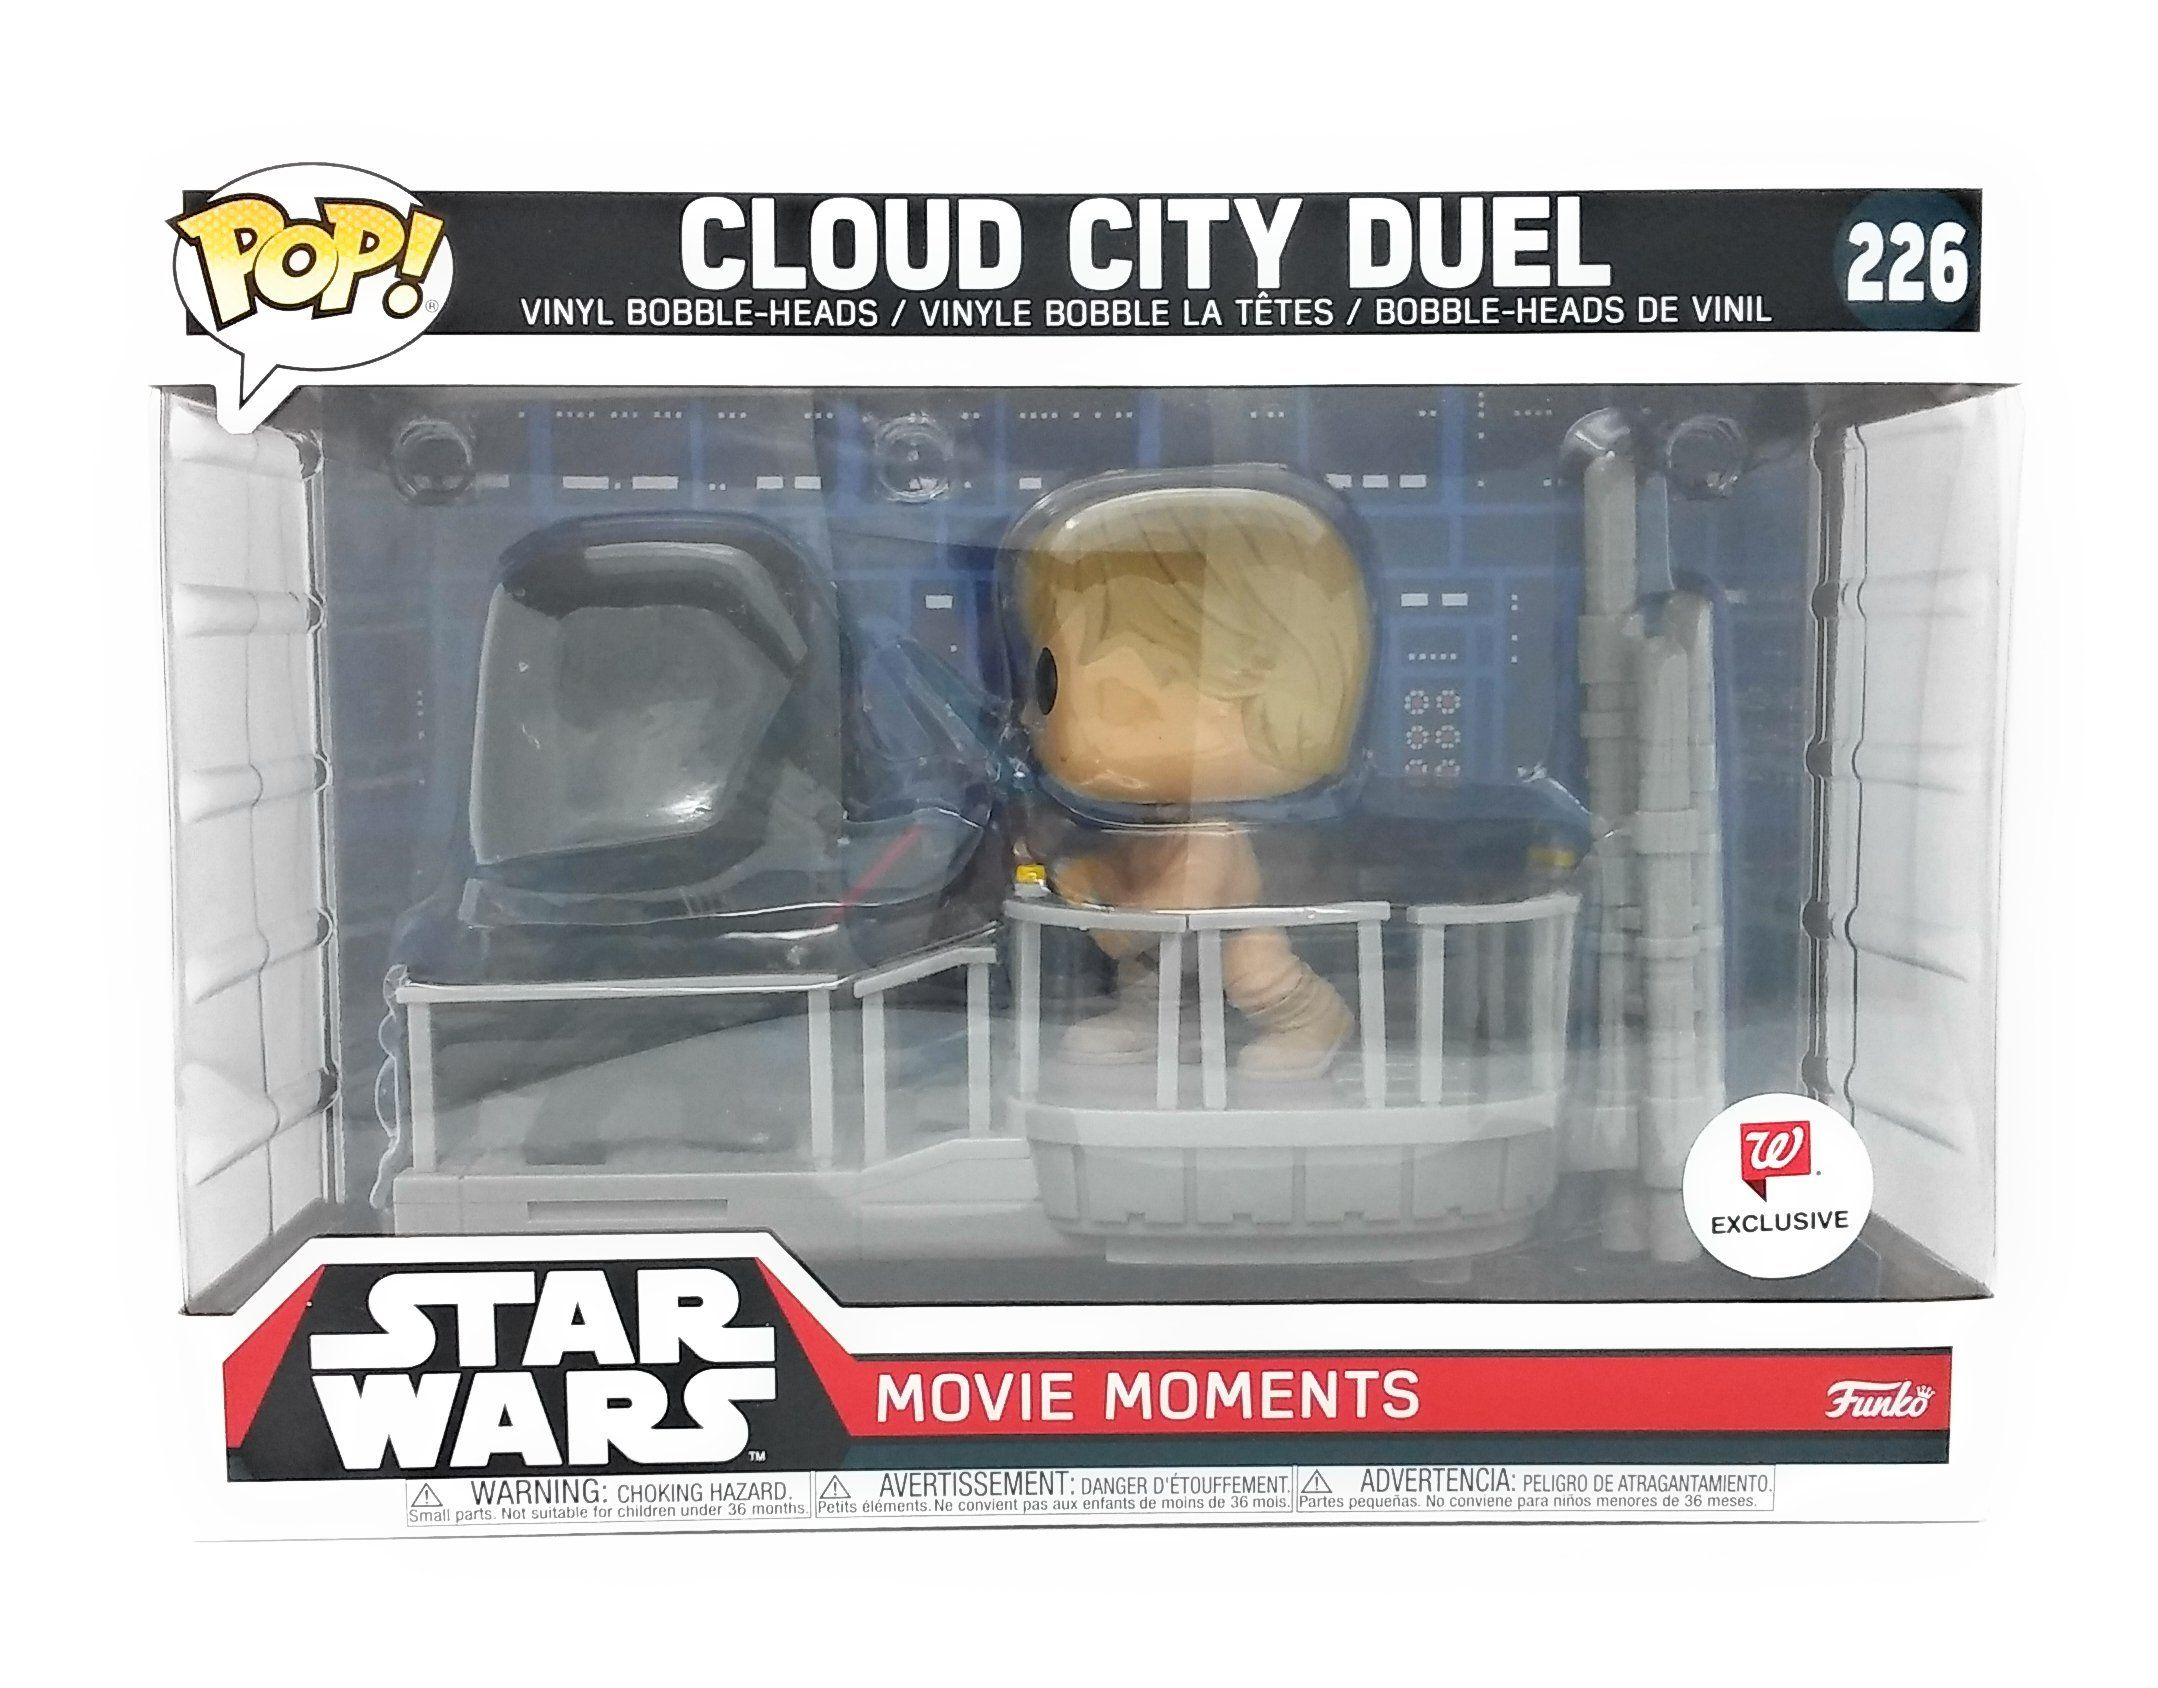 Funko Pop Star Wars Movie Moments Cloud City Duel 2 Pack Darth Vader Luke Skywalker New Funko Pop Movie Momen Star Wars Movie Cloud City Star Wars Figures